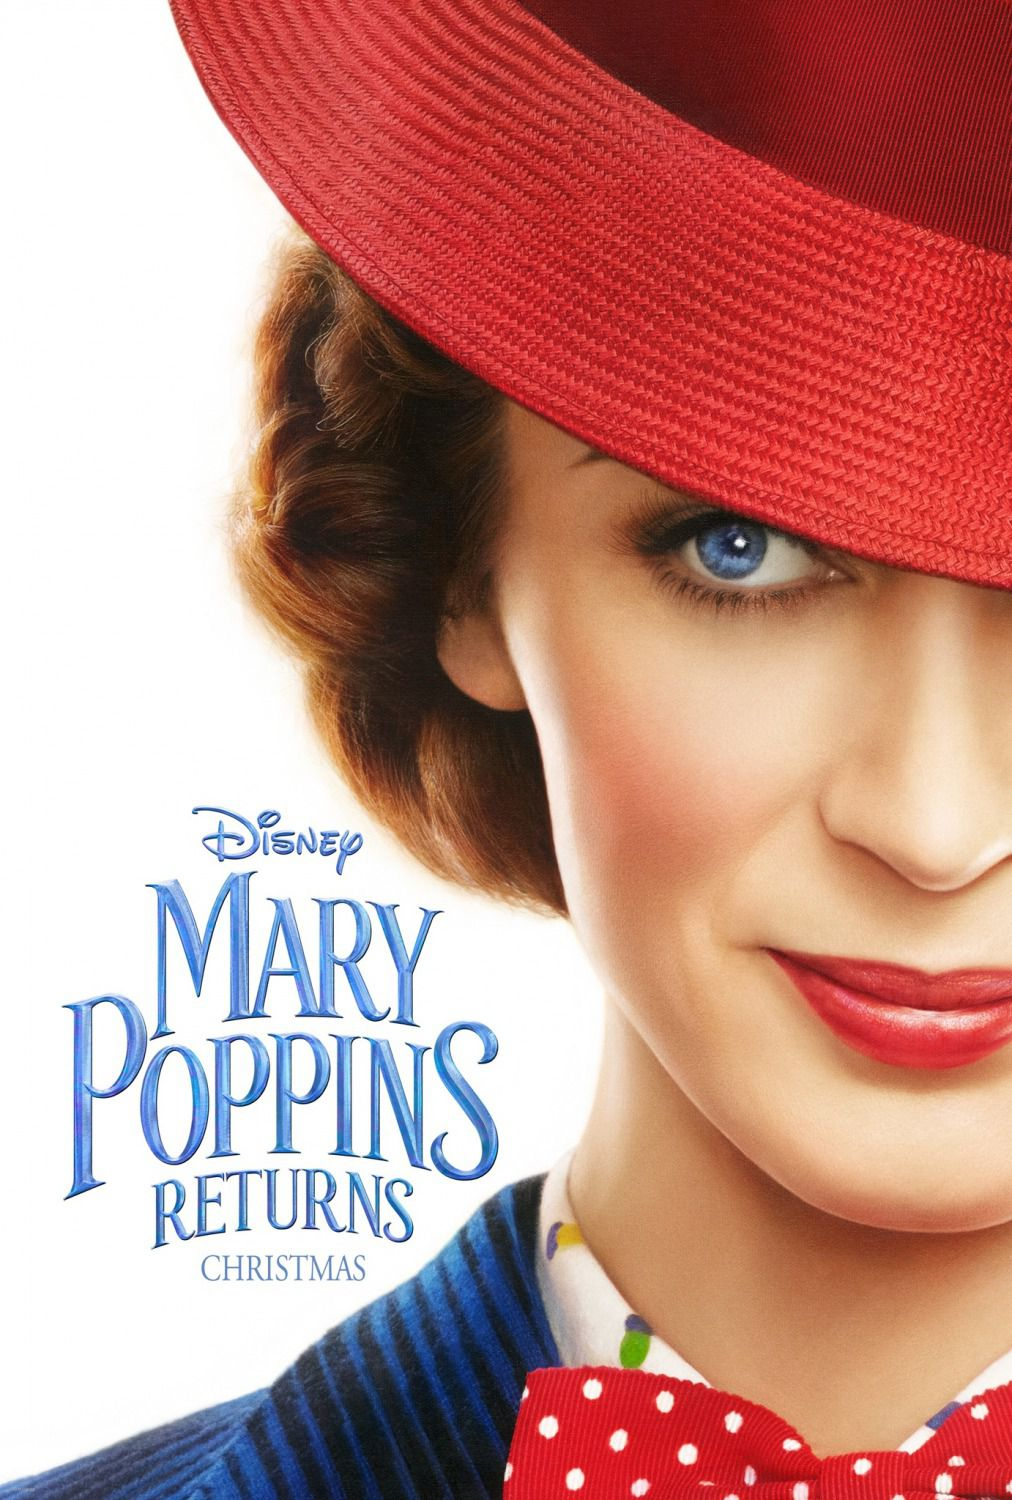 Mary Poppins Returns - il Ritorno di Mary Poppins - Disney Film Poster 2018